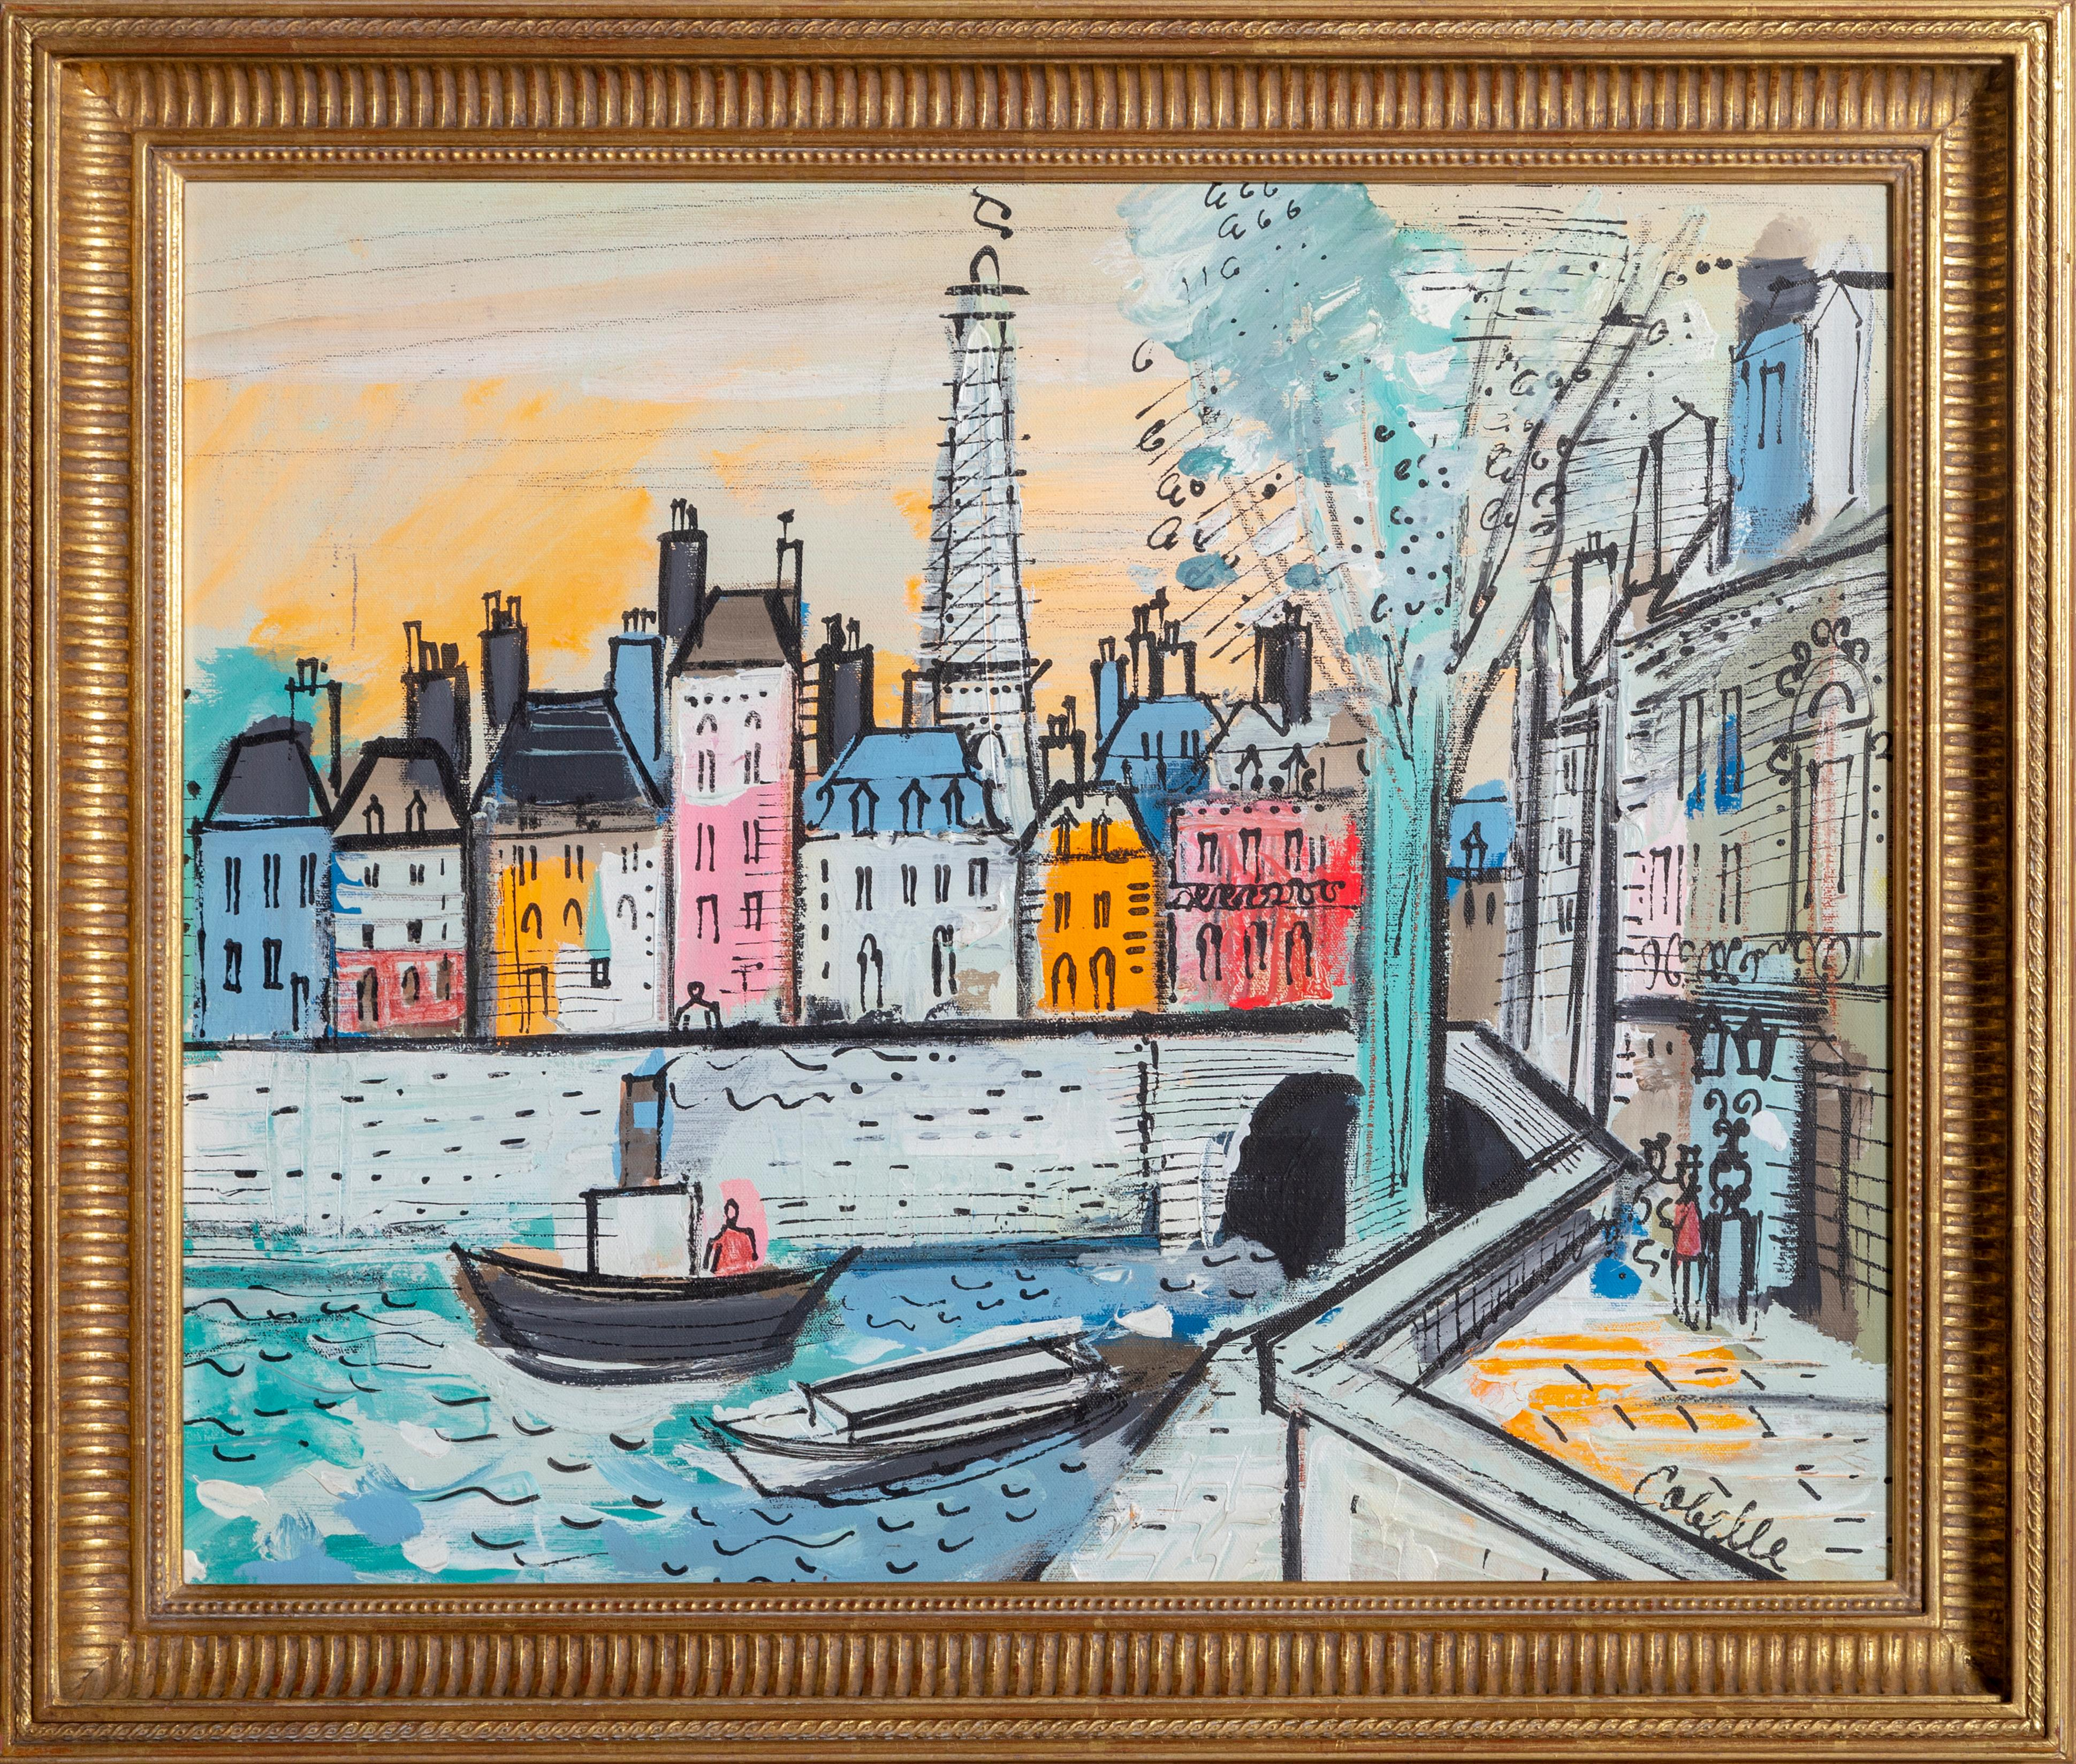 Banks of the Seine River, Parisian Cityscape Painting